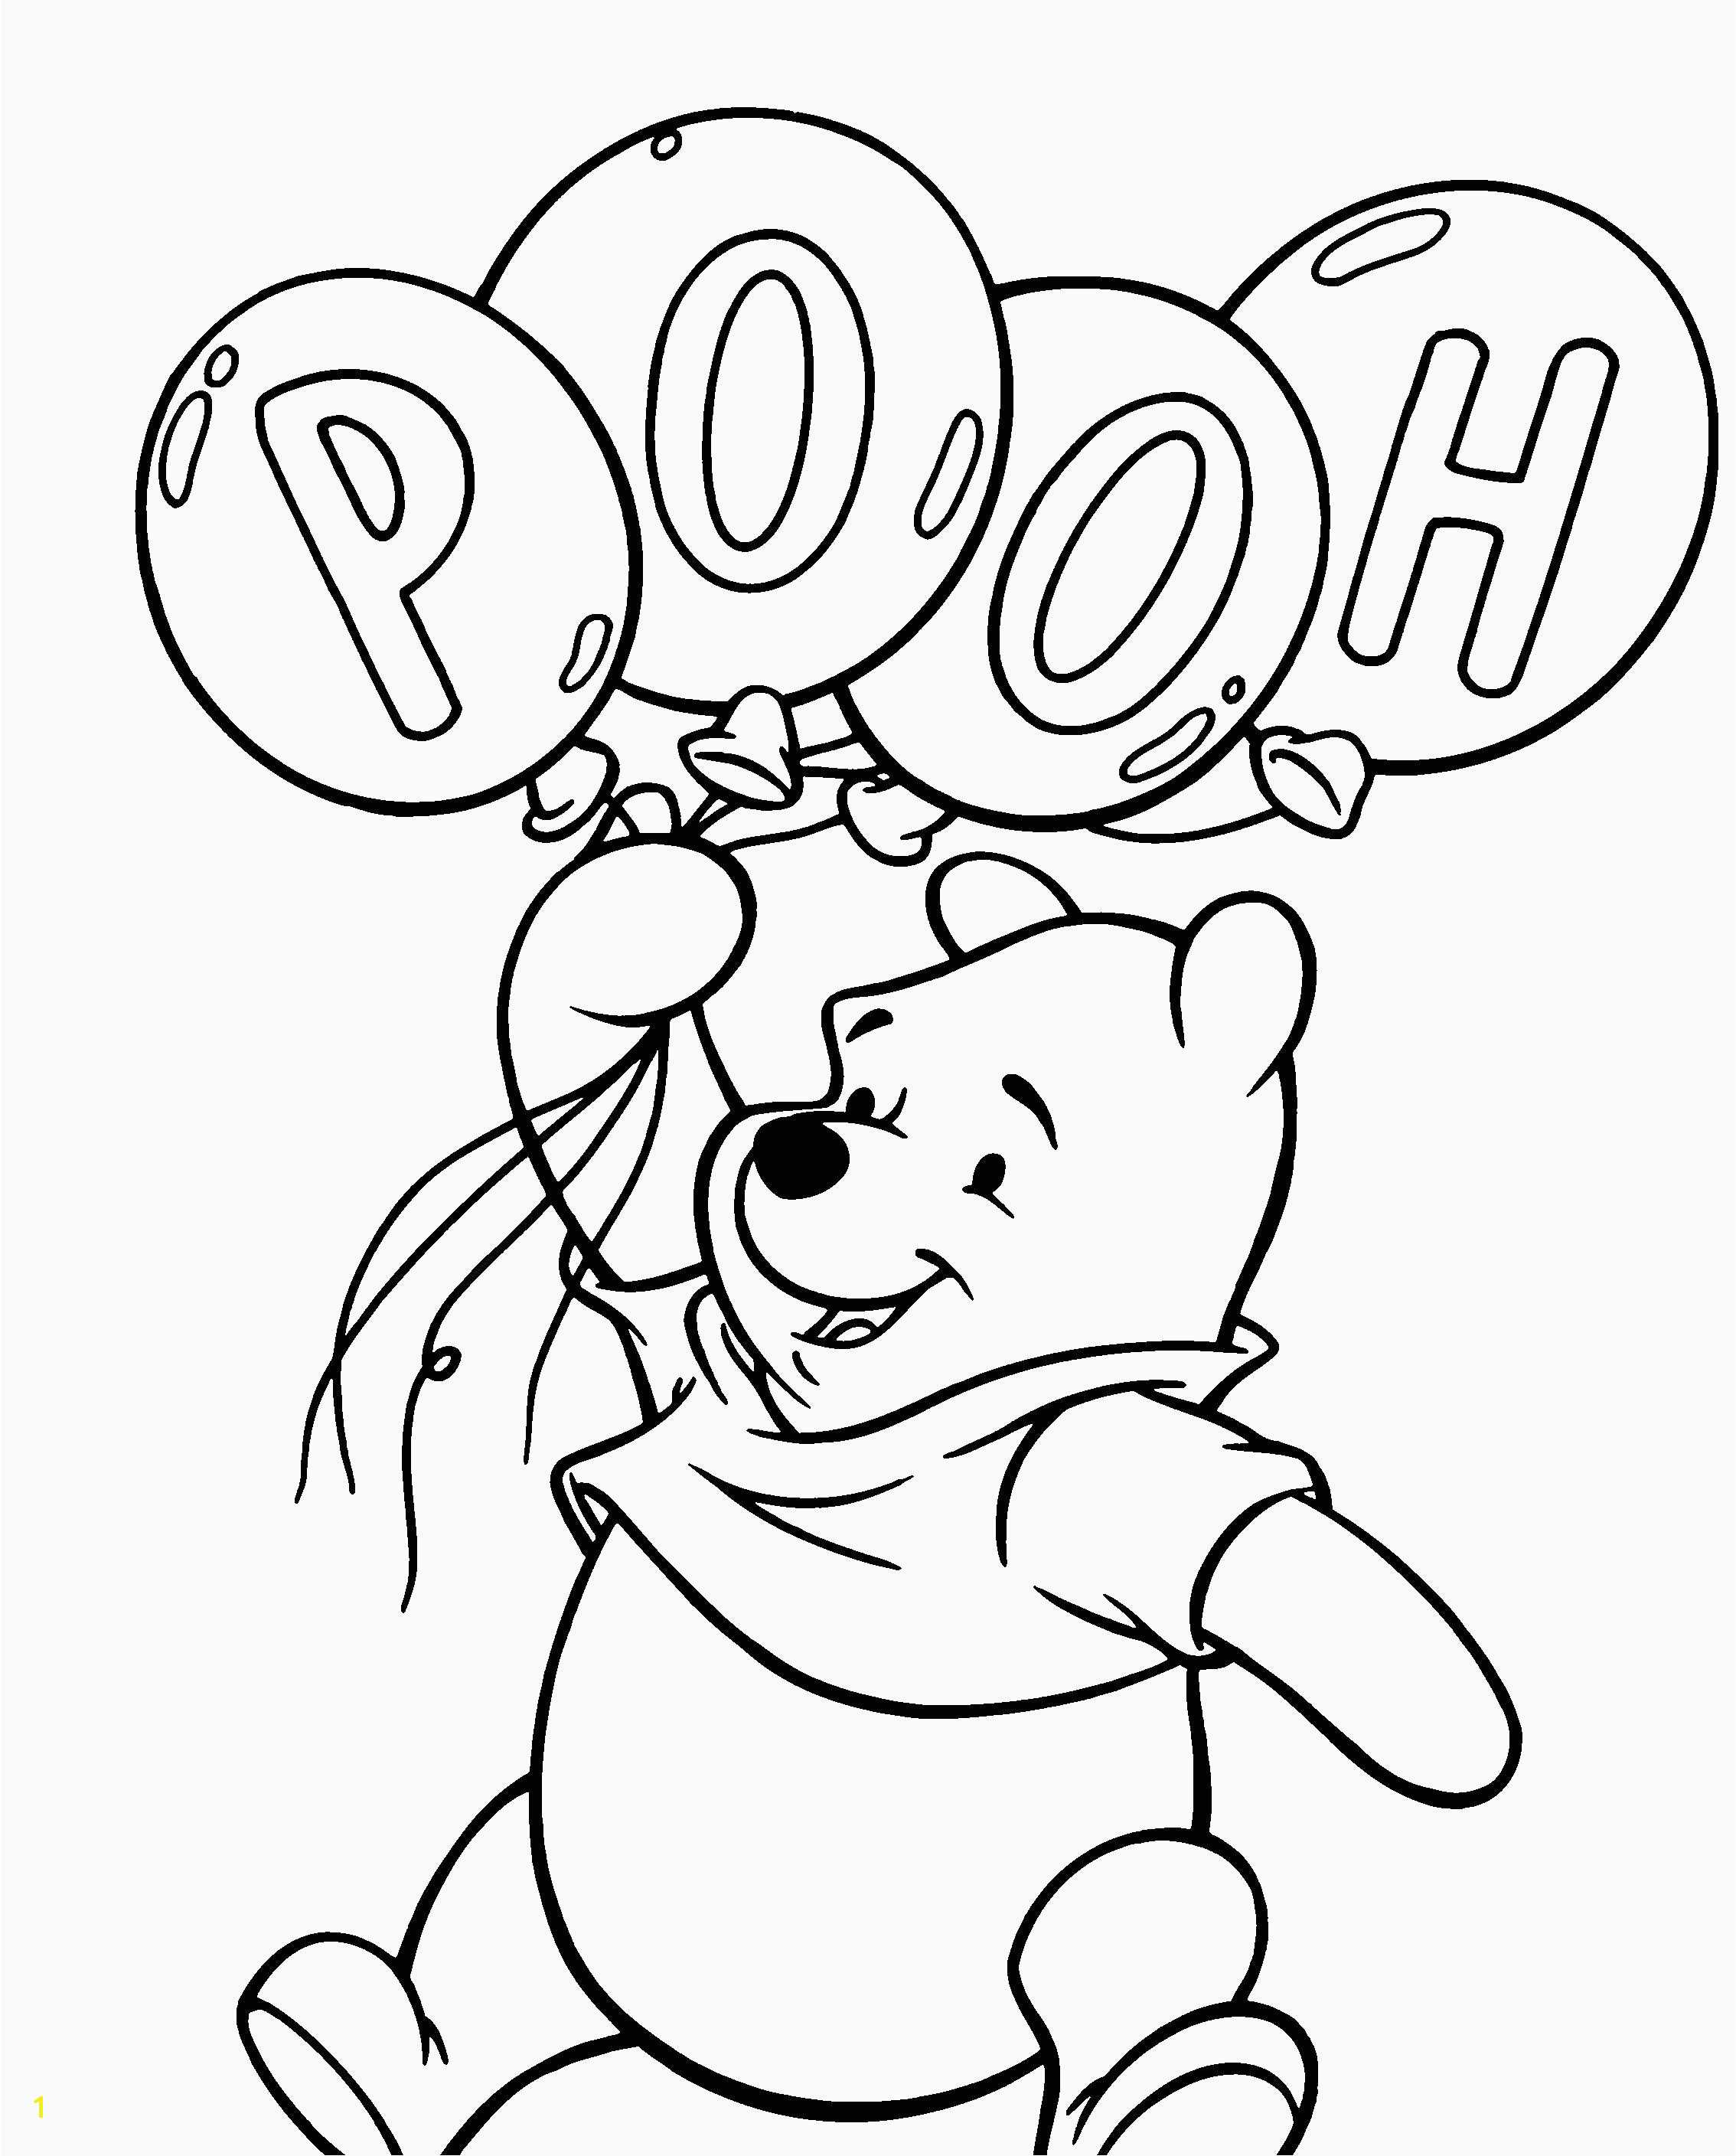 Tigger From Winnie the Pooh Coloring Pages Coloring Pages Einzigartig Ausmalbilder Winnie Pooh